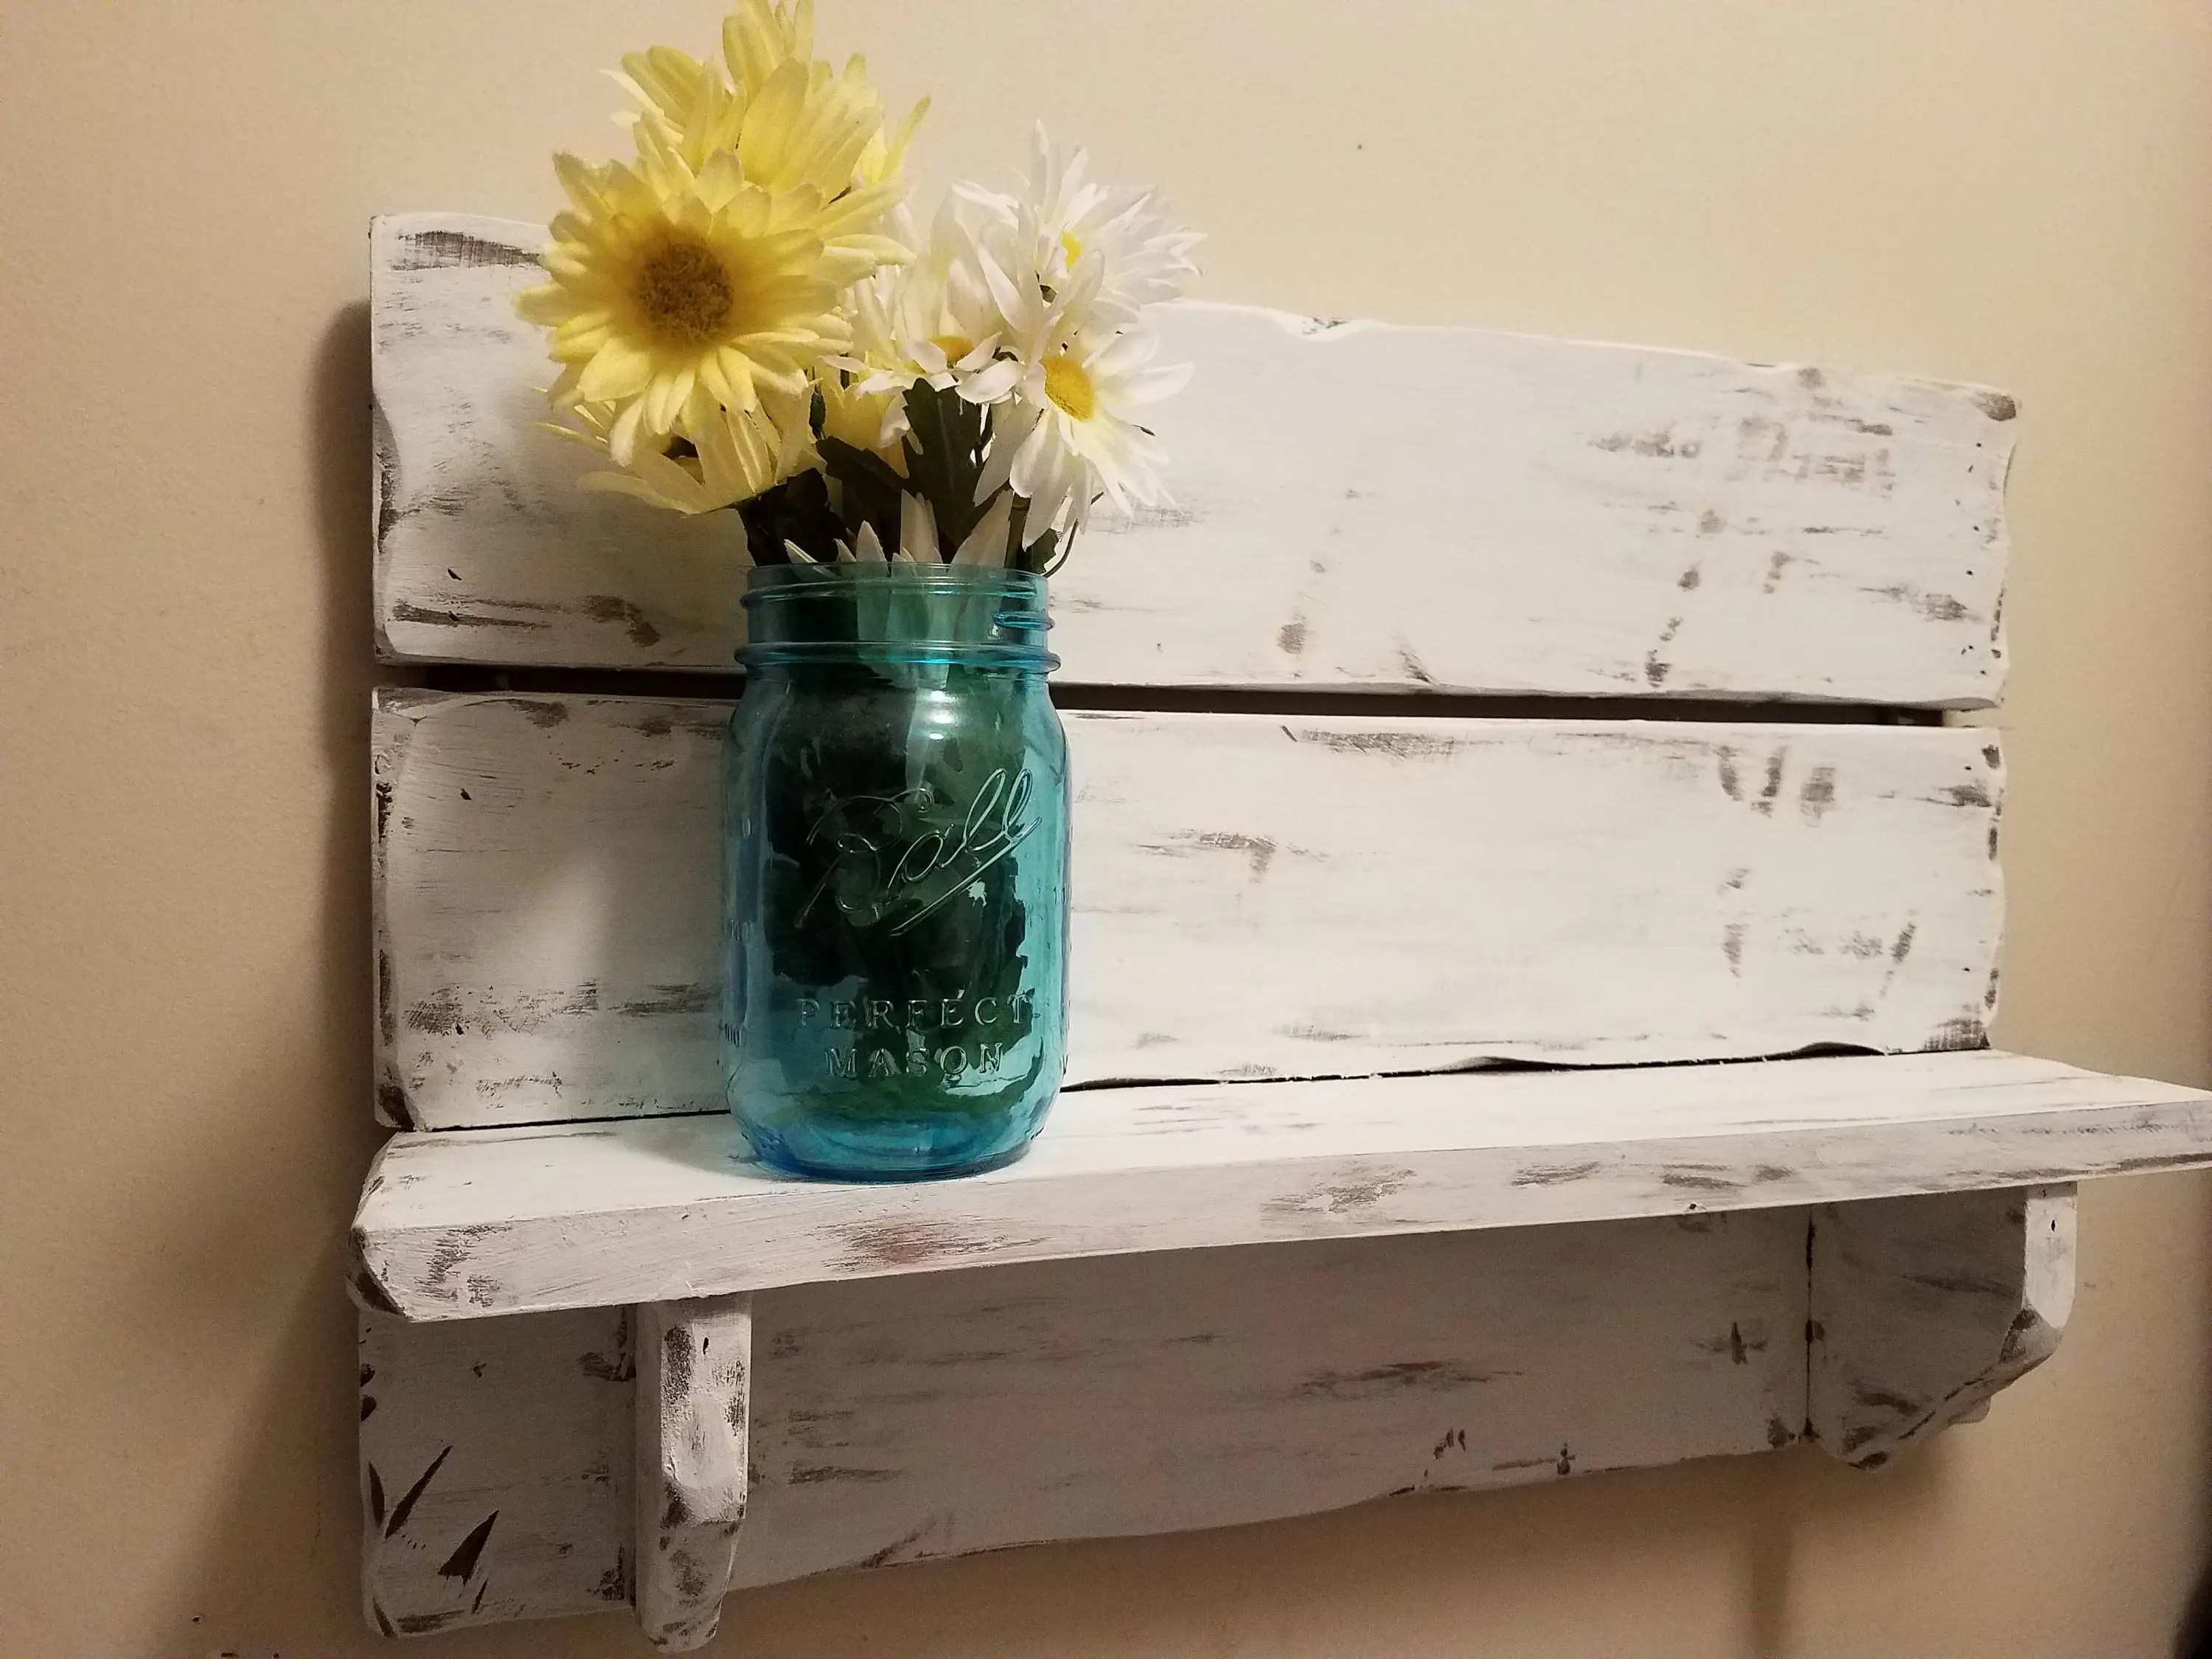 Rustic home decor   Etsy Rustic home decor  Pallet shelf  Bath Shelf  kitchen shelf  farmhouse decor   country western decor  wood shelf  Rustic Decor